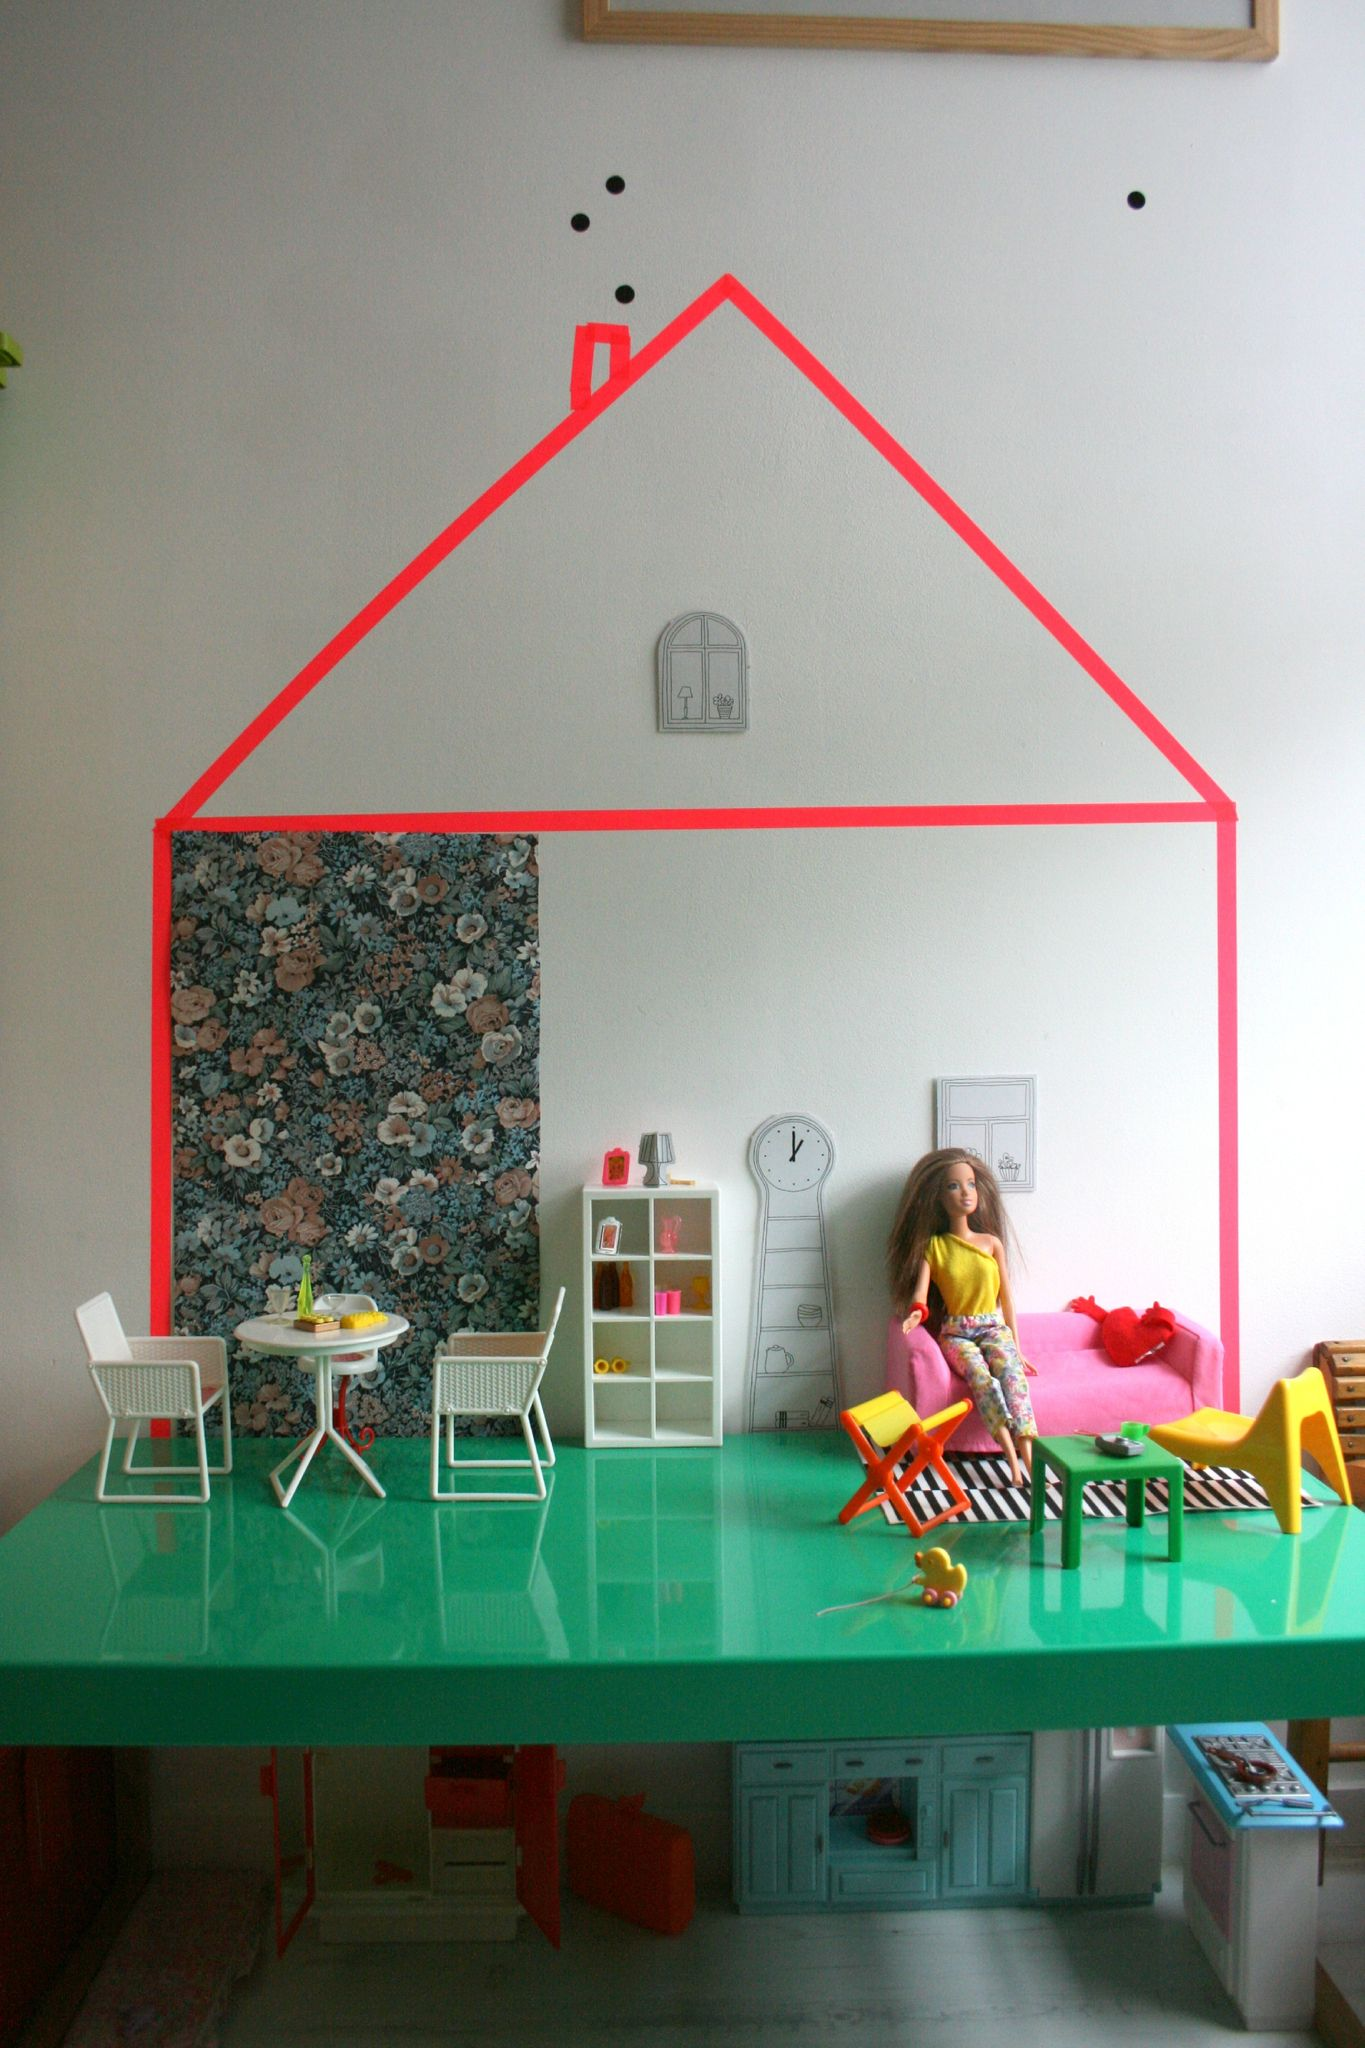 diy la maison de barbie emilie sans chichi. Black Bedroom Furniture Sets. Home Design Ideas